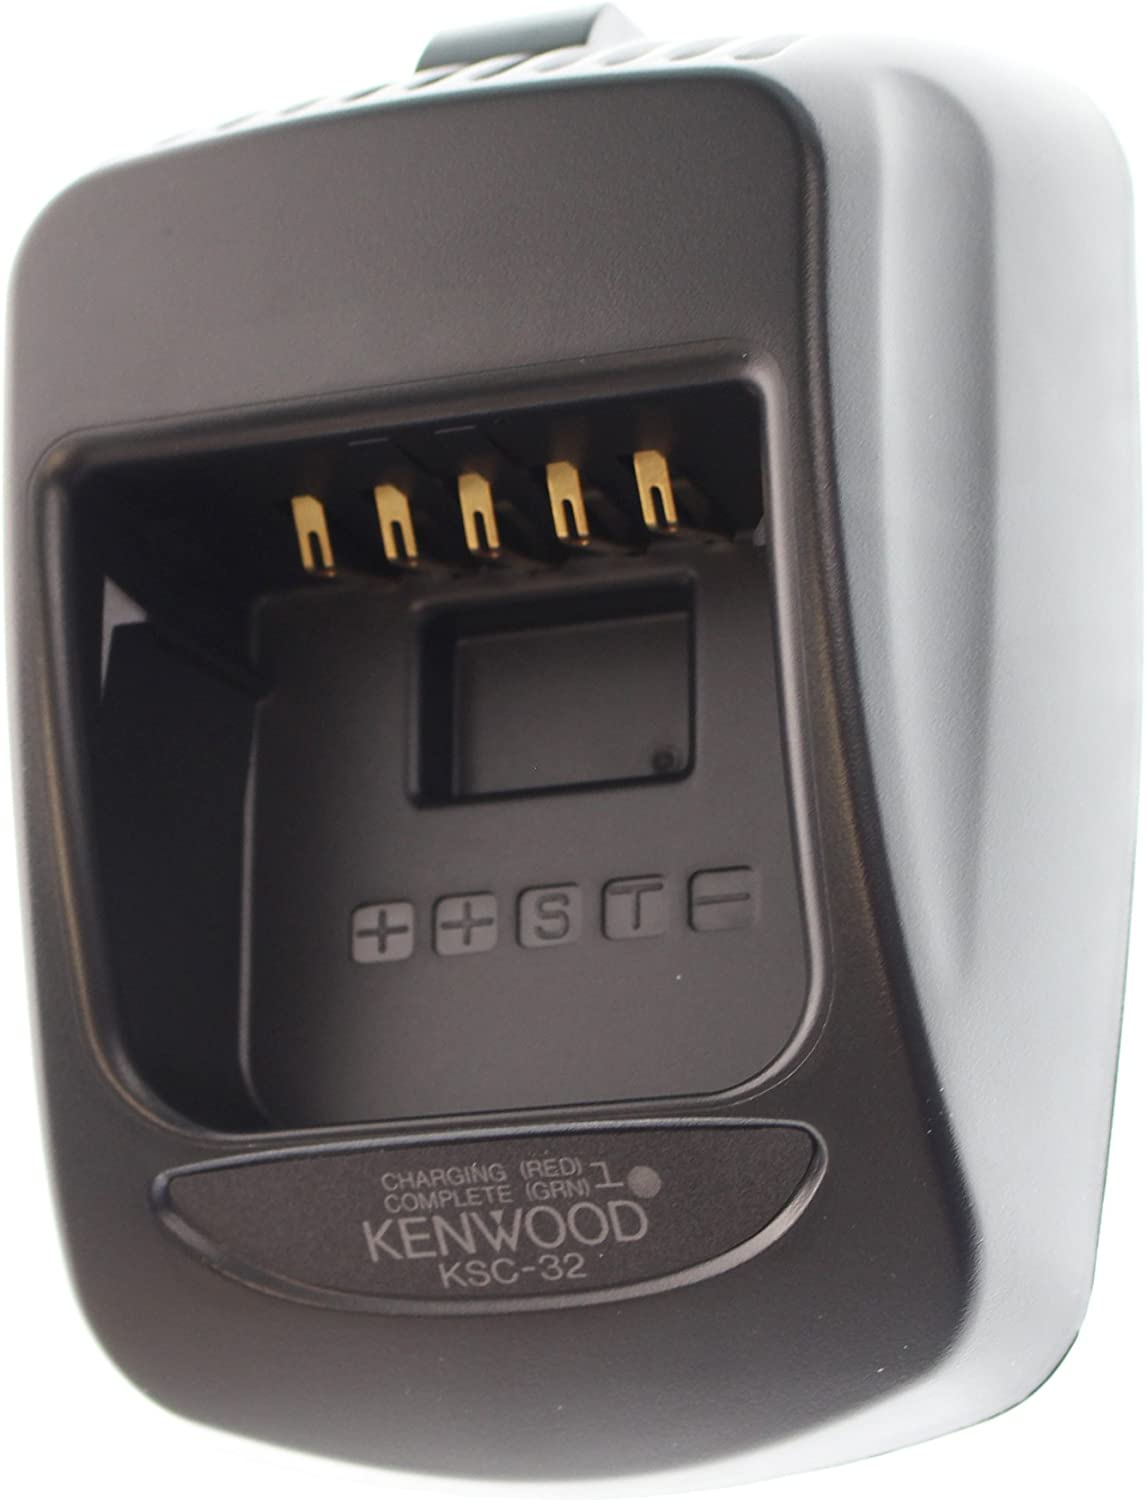 KSC-32 Rapid Battery Charger AC Power Adapter for KENWOOD KNB-31 KNB-32 KNB-33